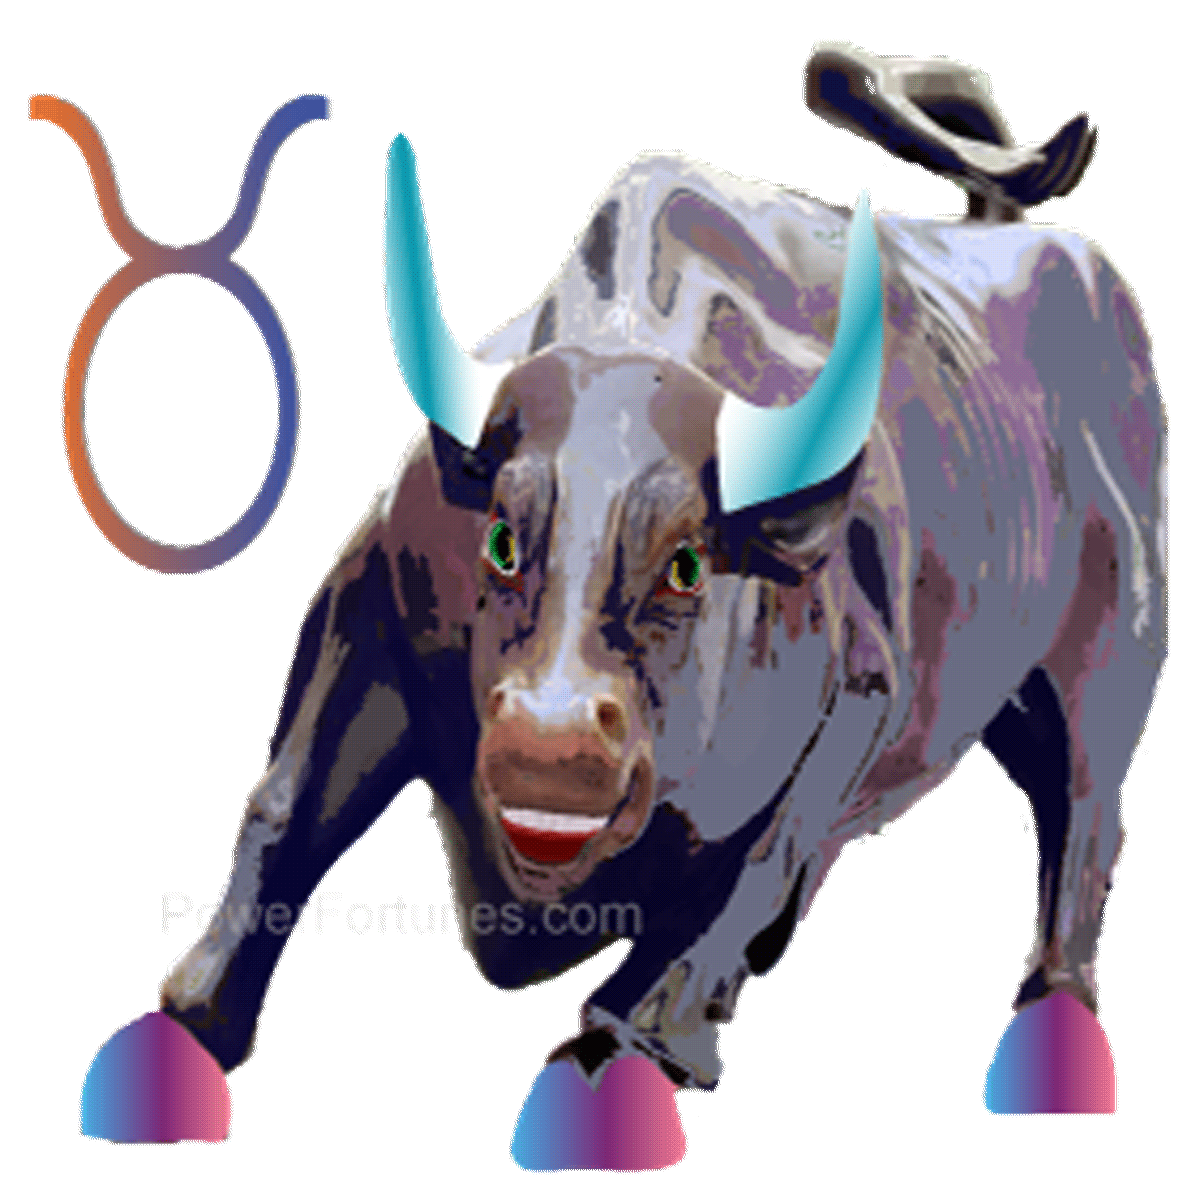 Monthly horoscopes for Taurus, from 1st March to 31st March